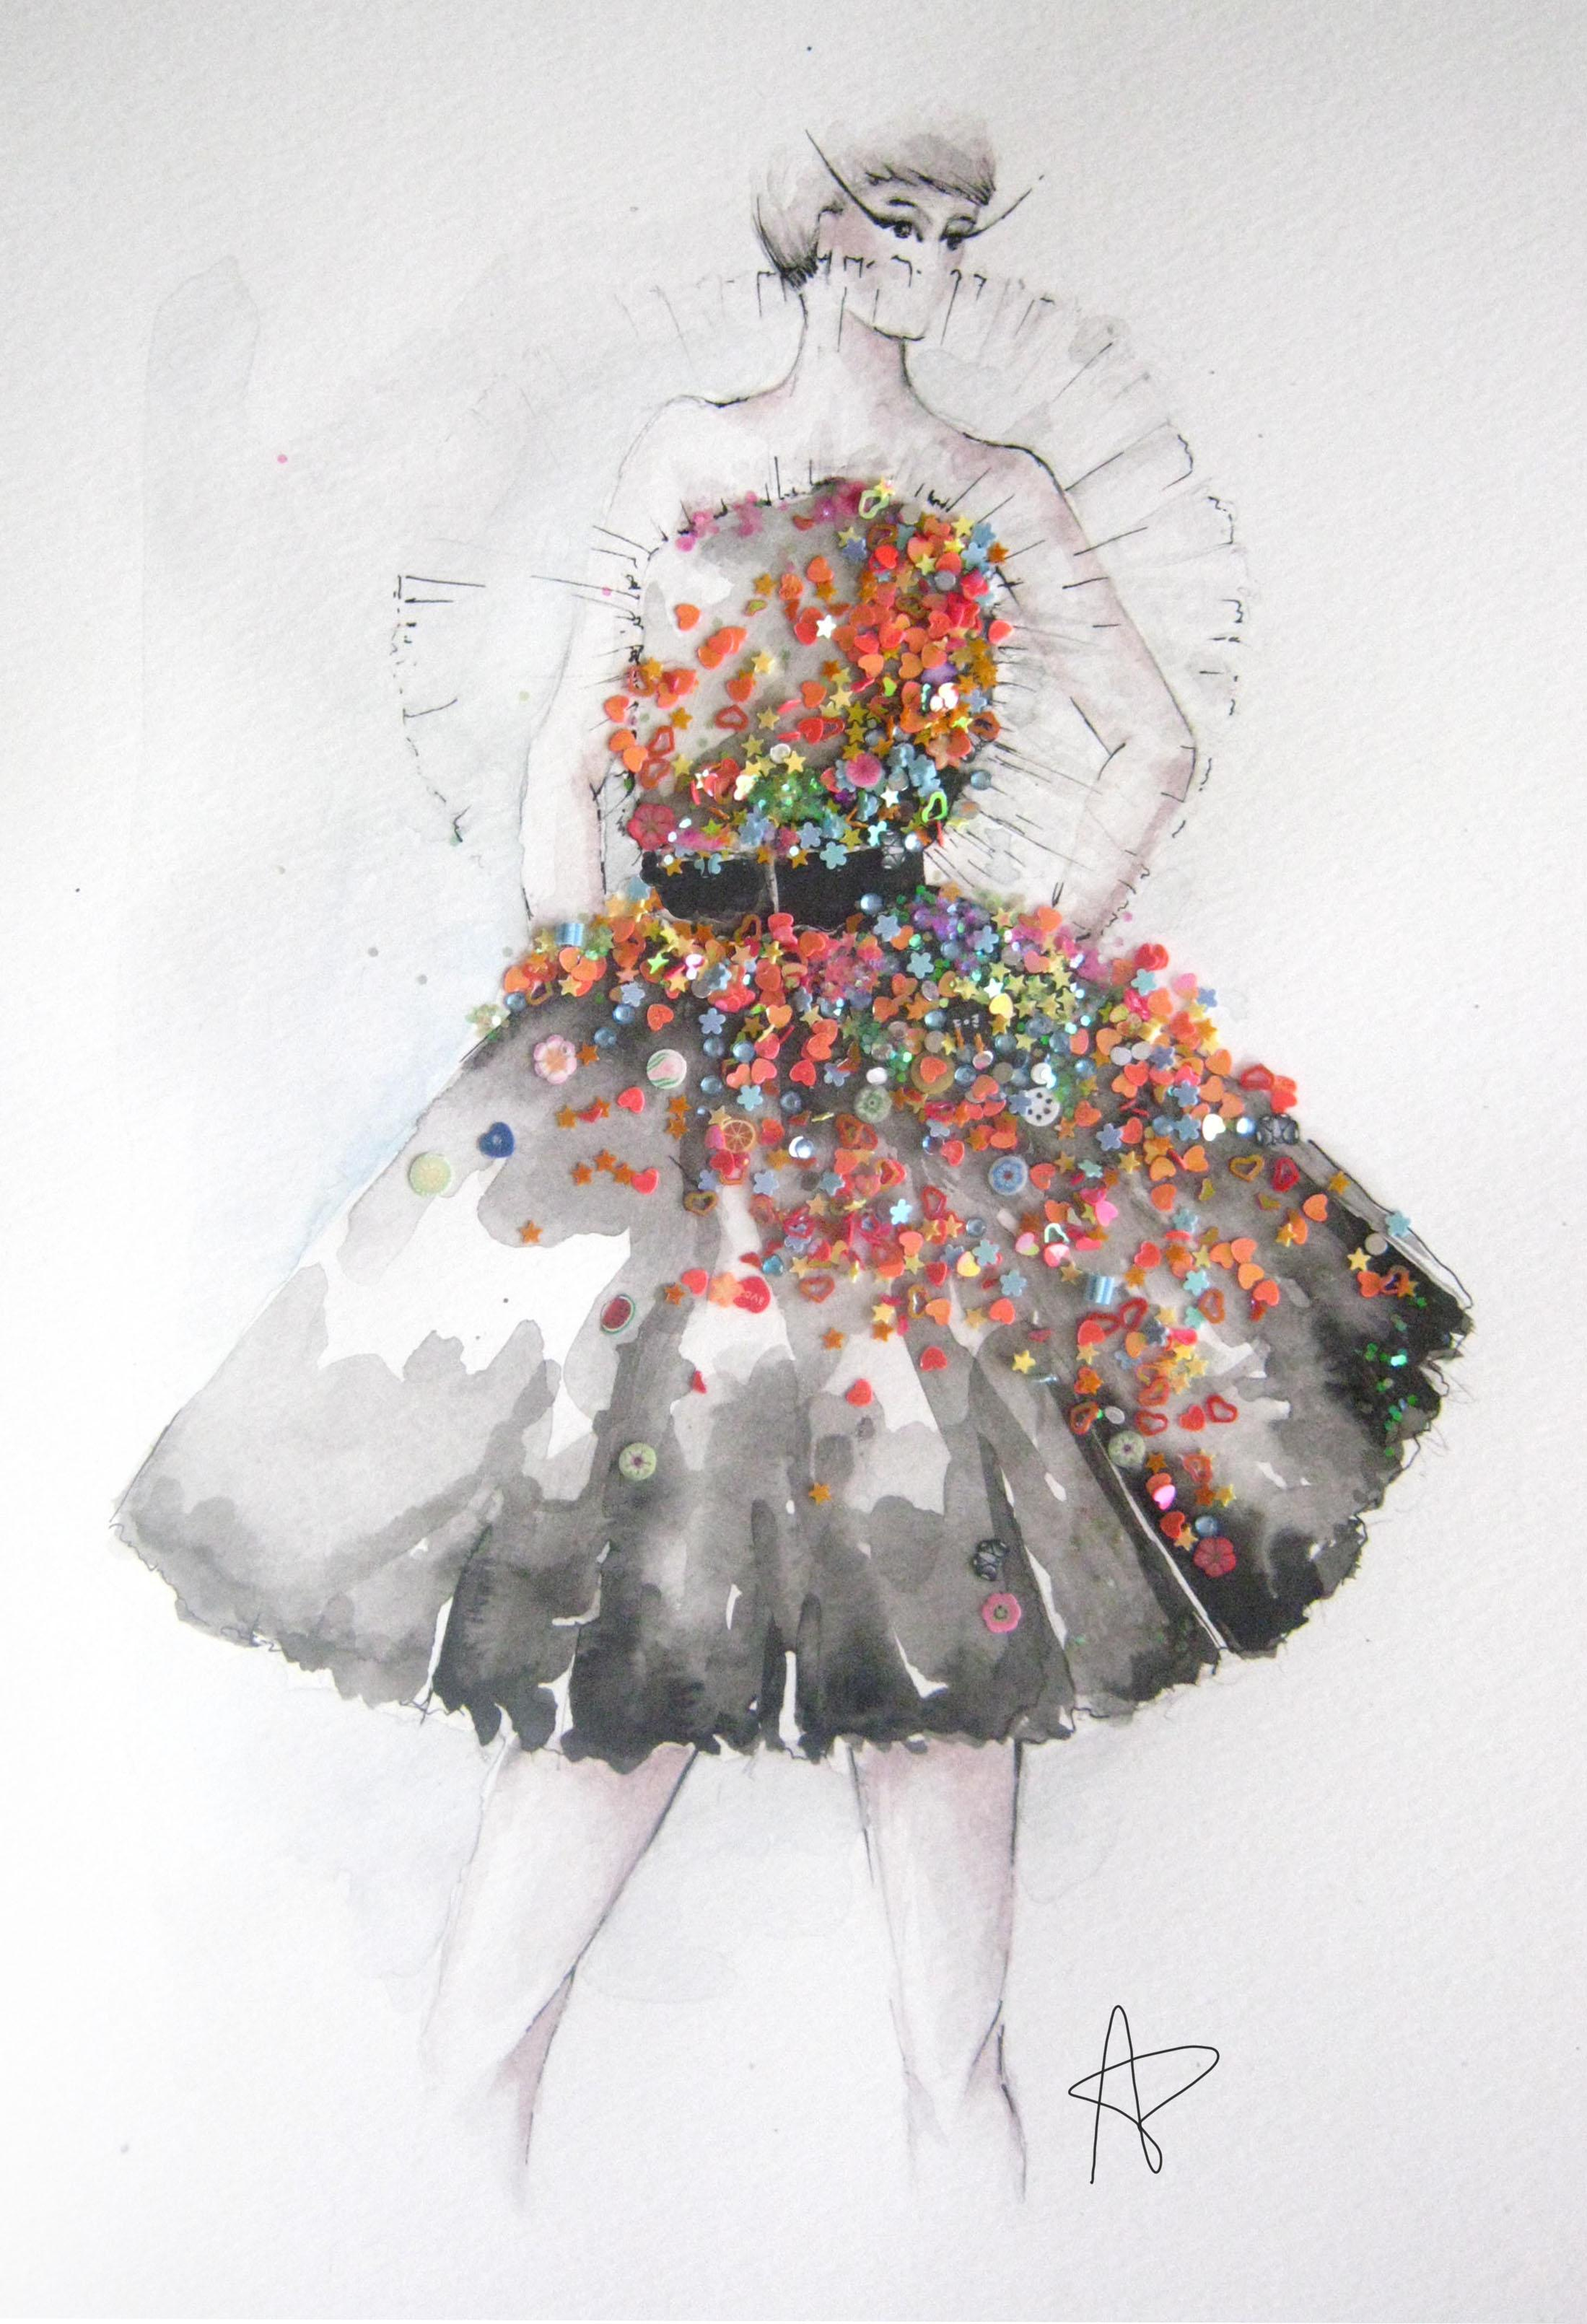 EMBELLISHED: The Empire of Colors - image 9 - student project